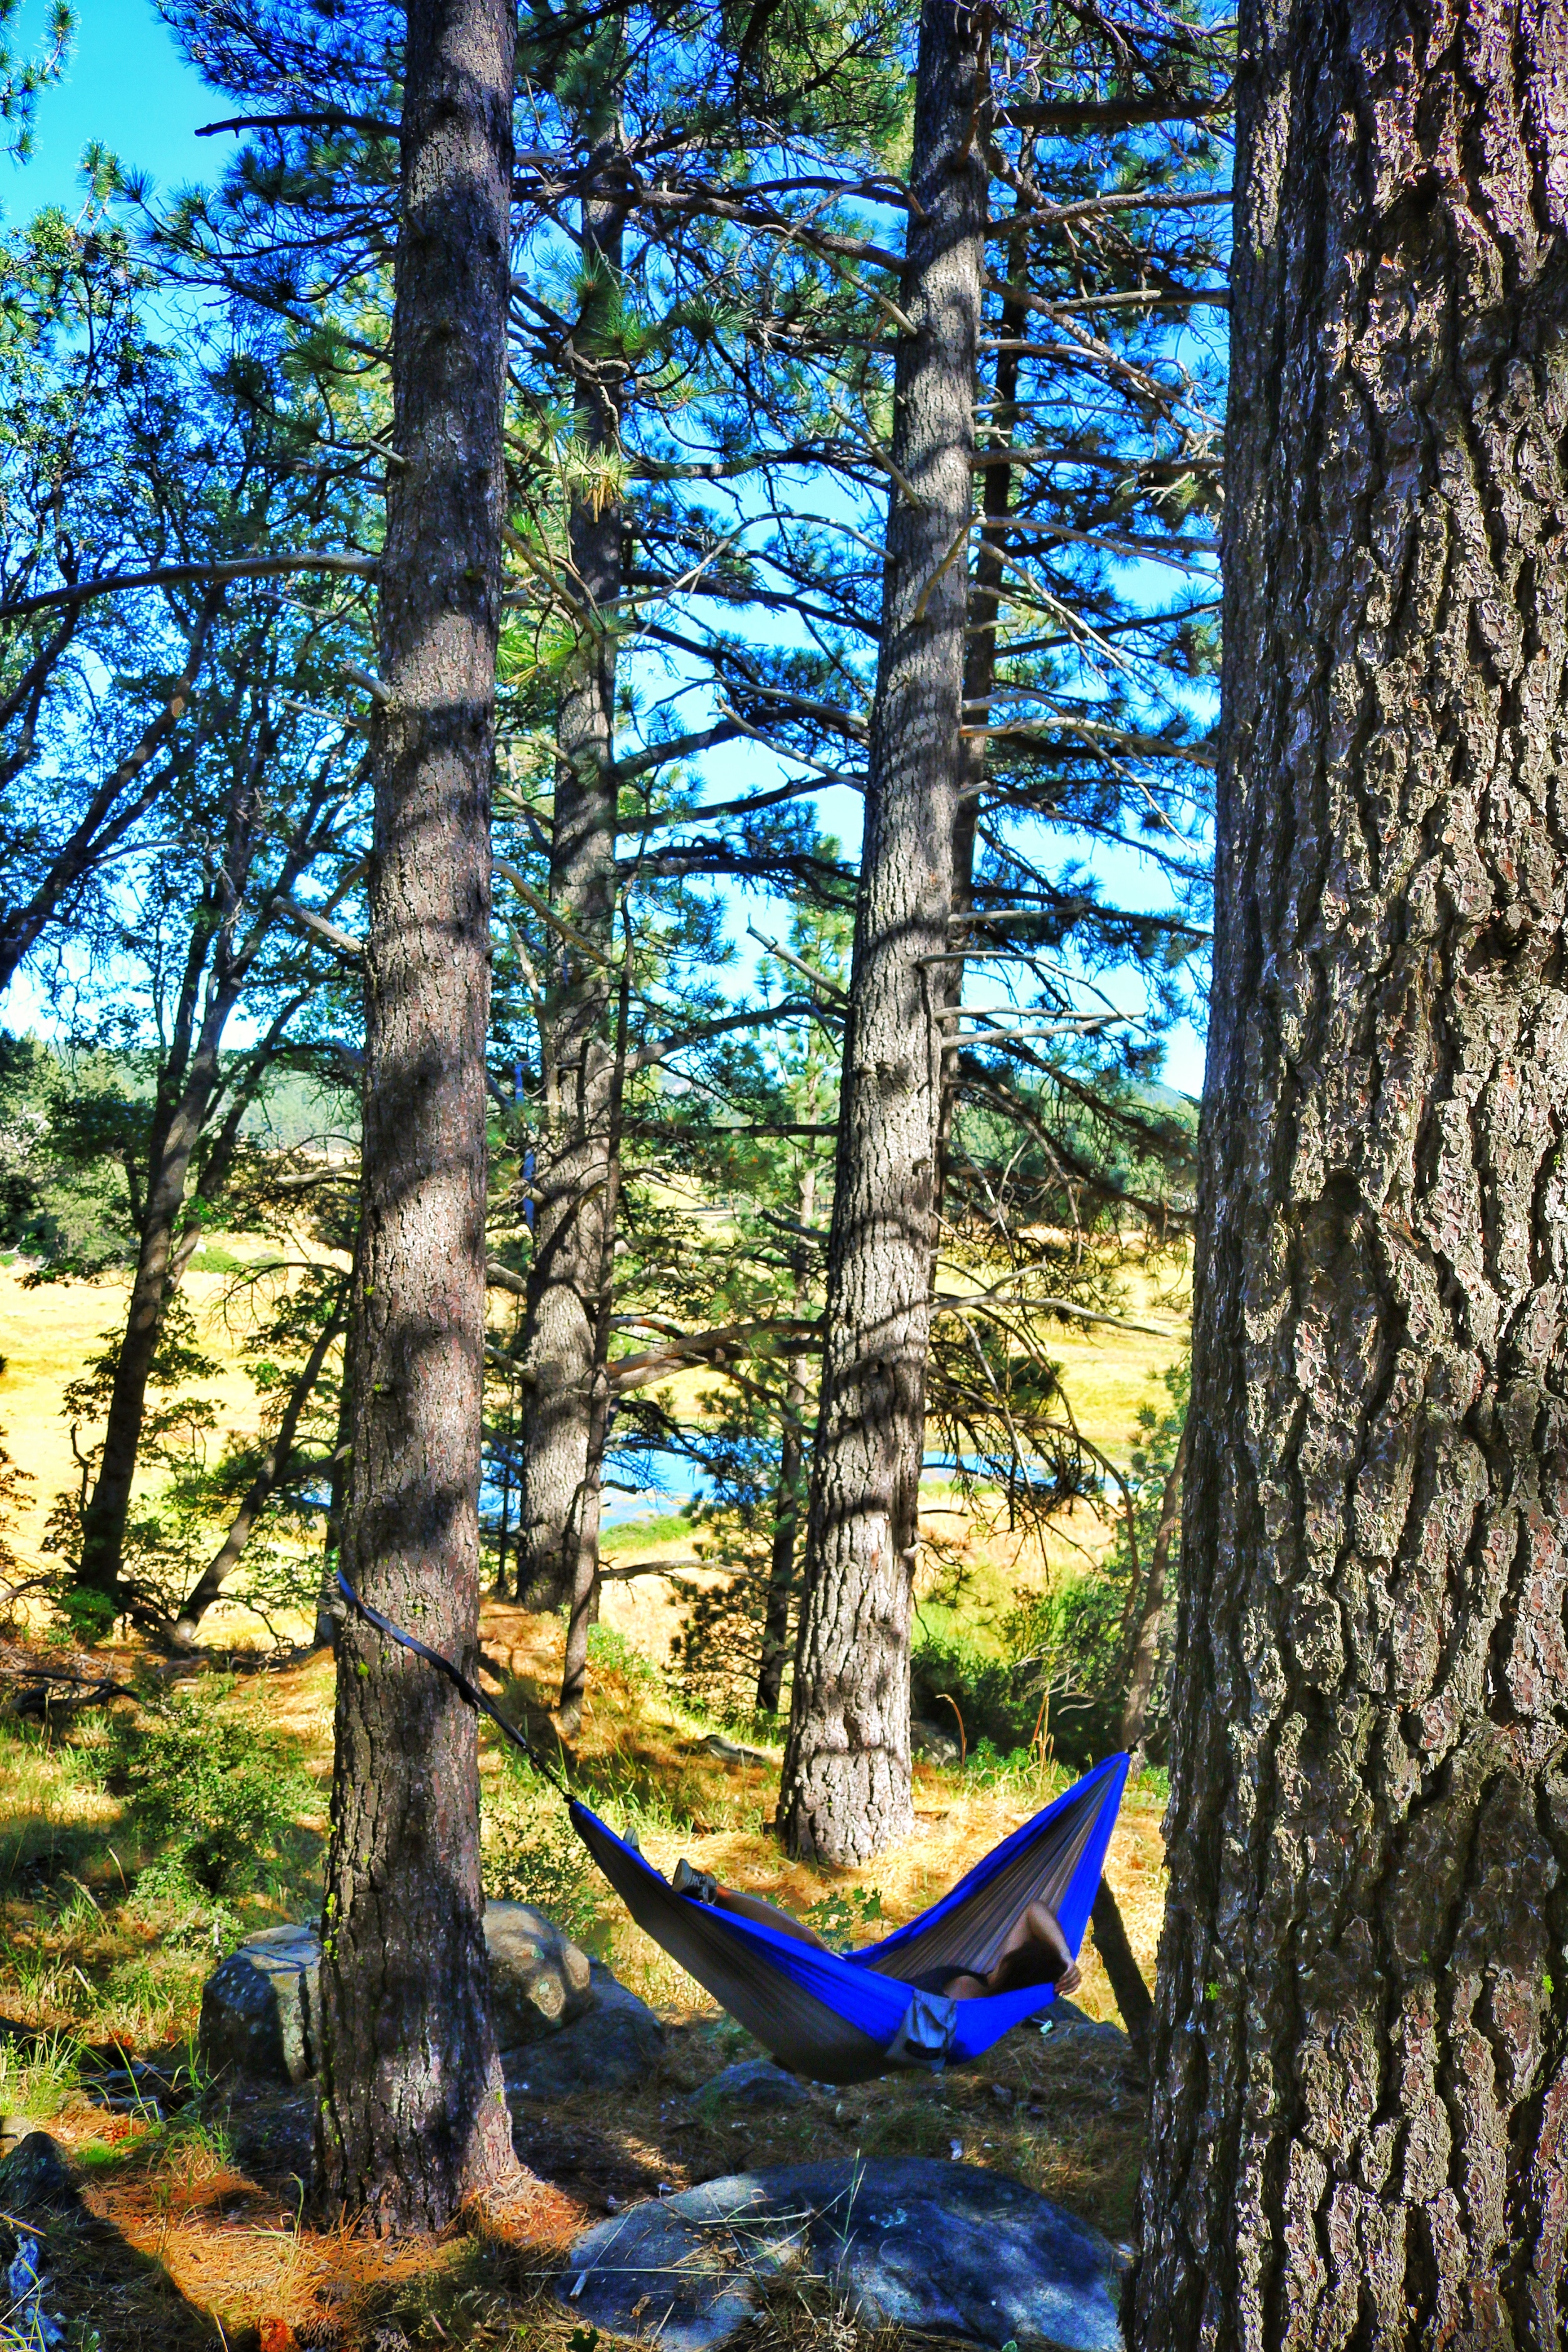 The Serac Classic Camping Hammock provides great comfort on day and multi-day trips.